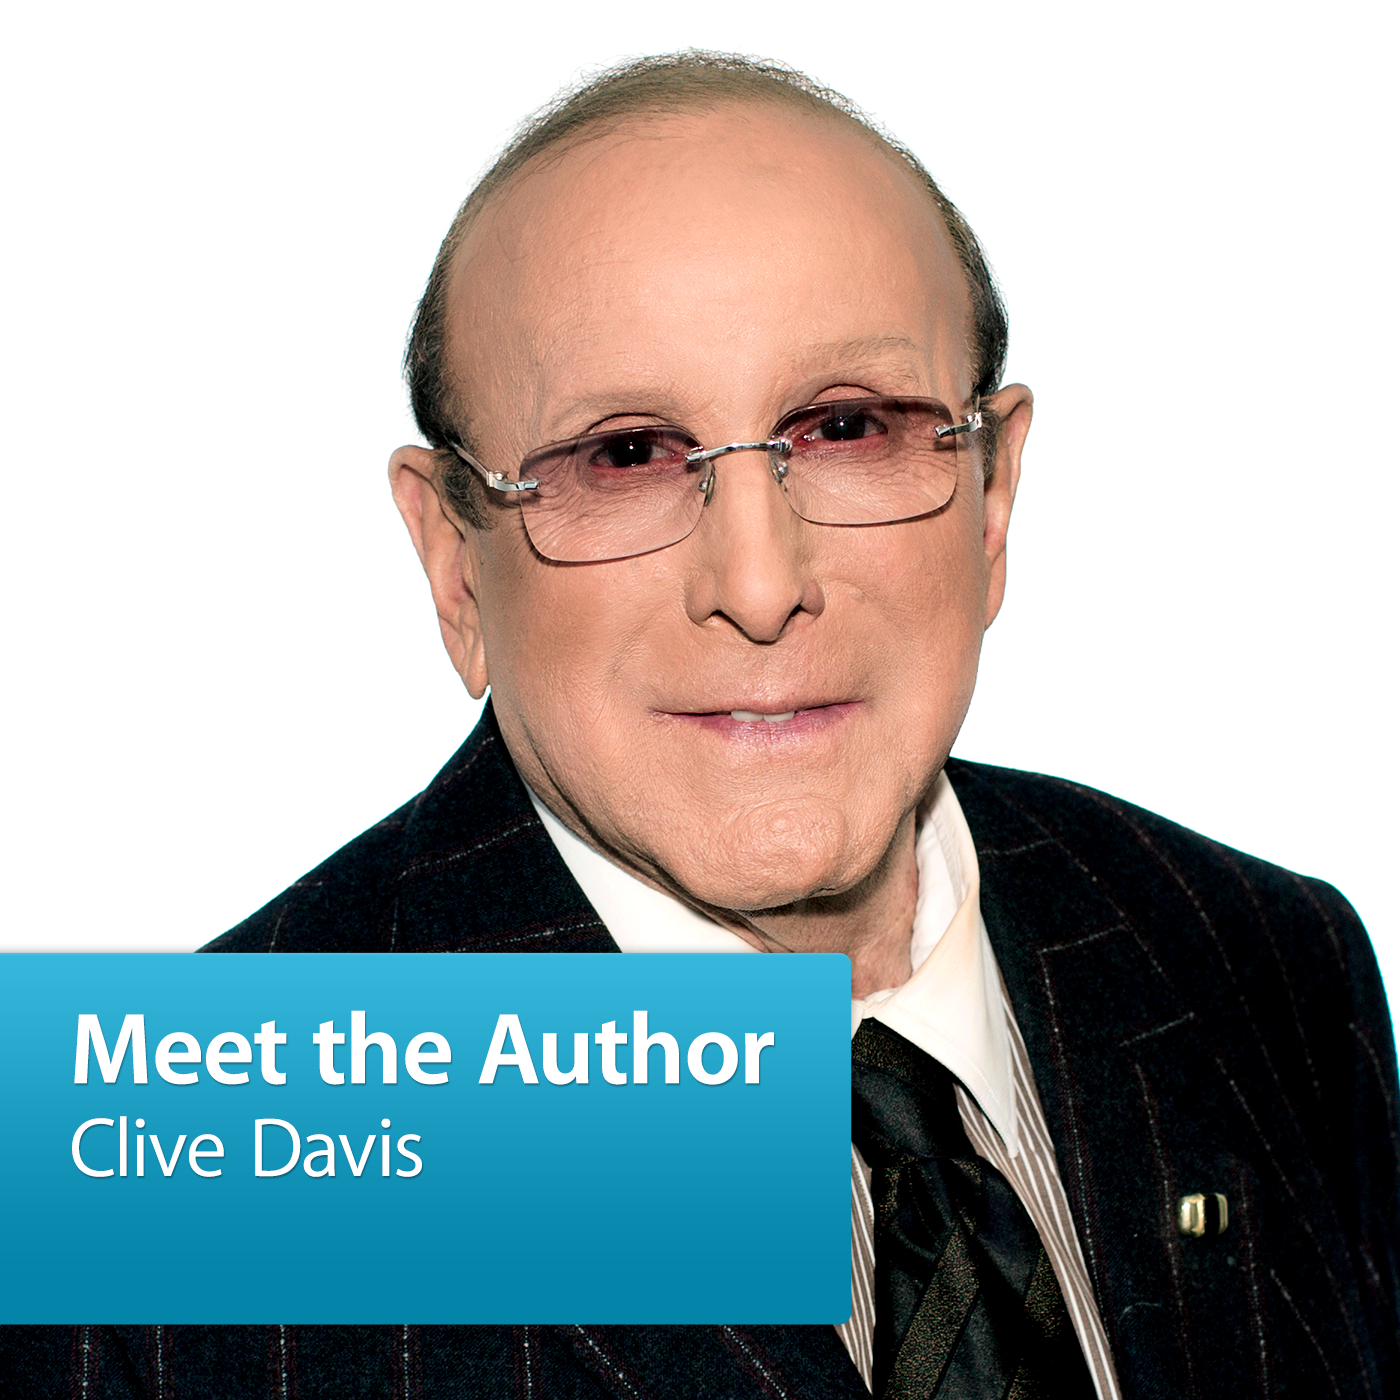 Clive Davis: Meet the Author